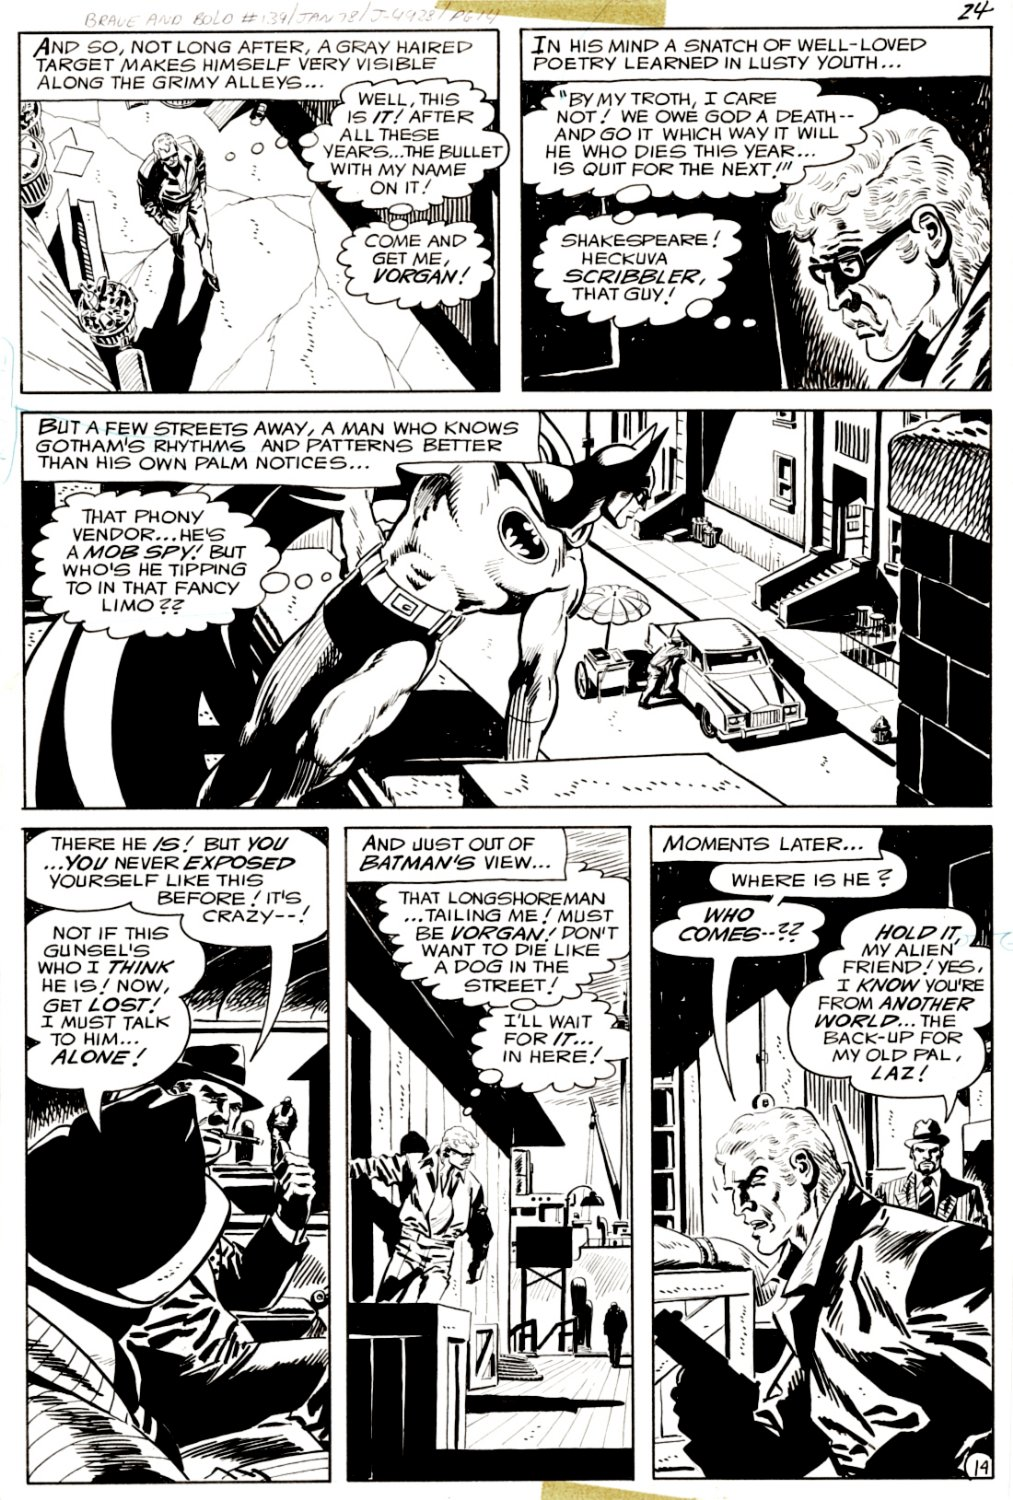 Brave and the Bold #139 p 14 (SOLD LIVE ON 'DUELING DEALERS OF COMIC ART' EPISODE #39 PODCAST ON 10-4-2021